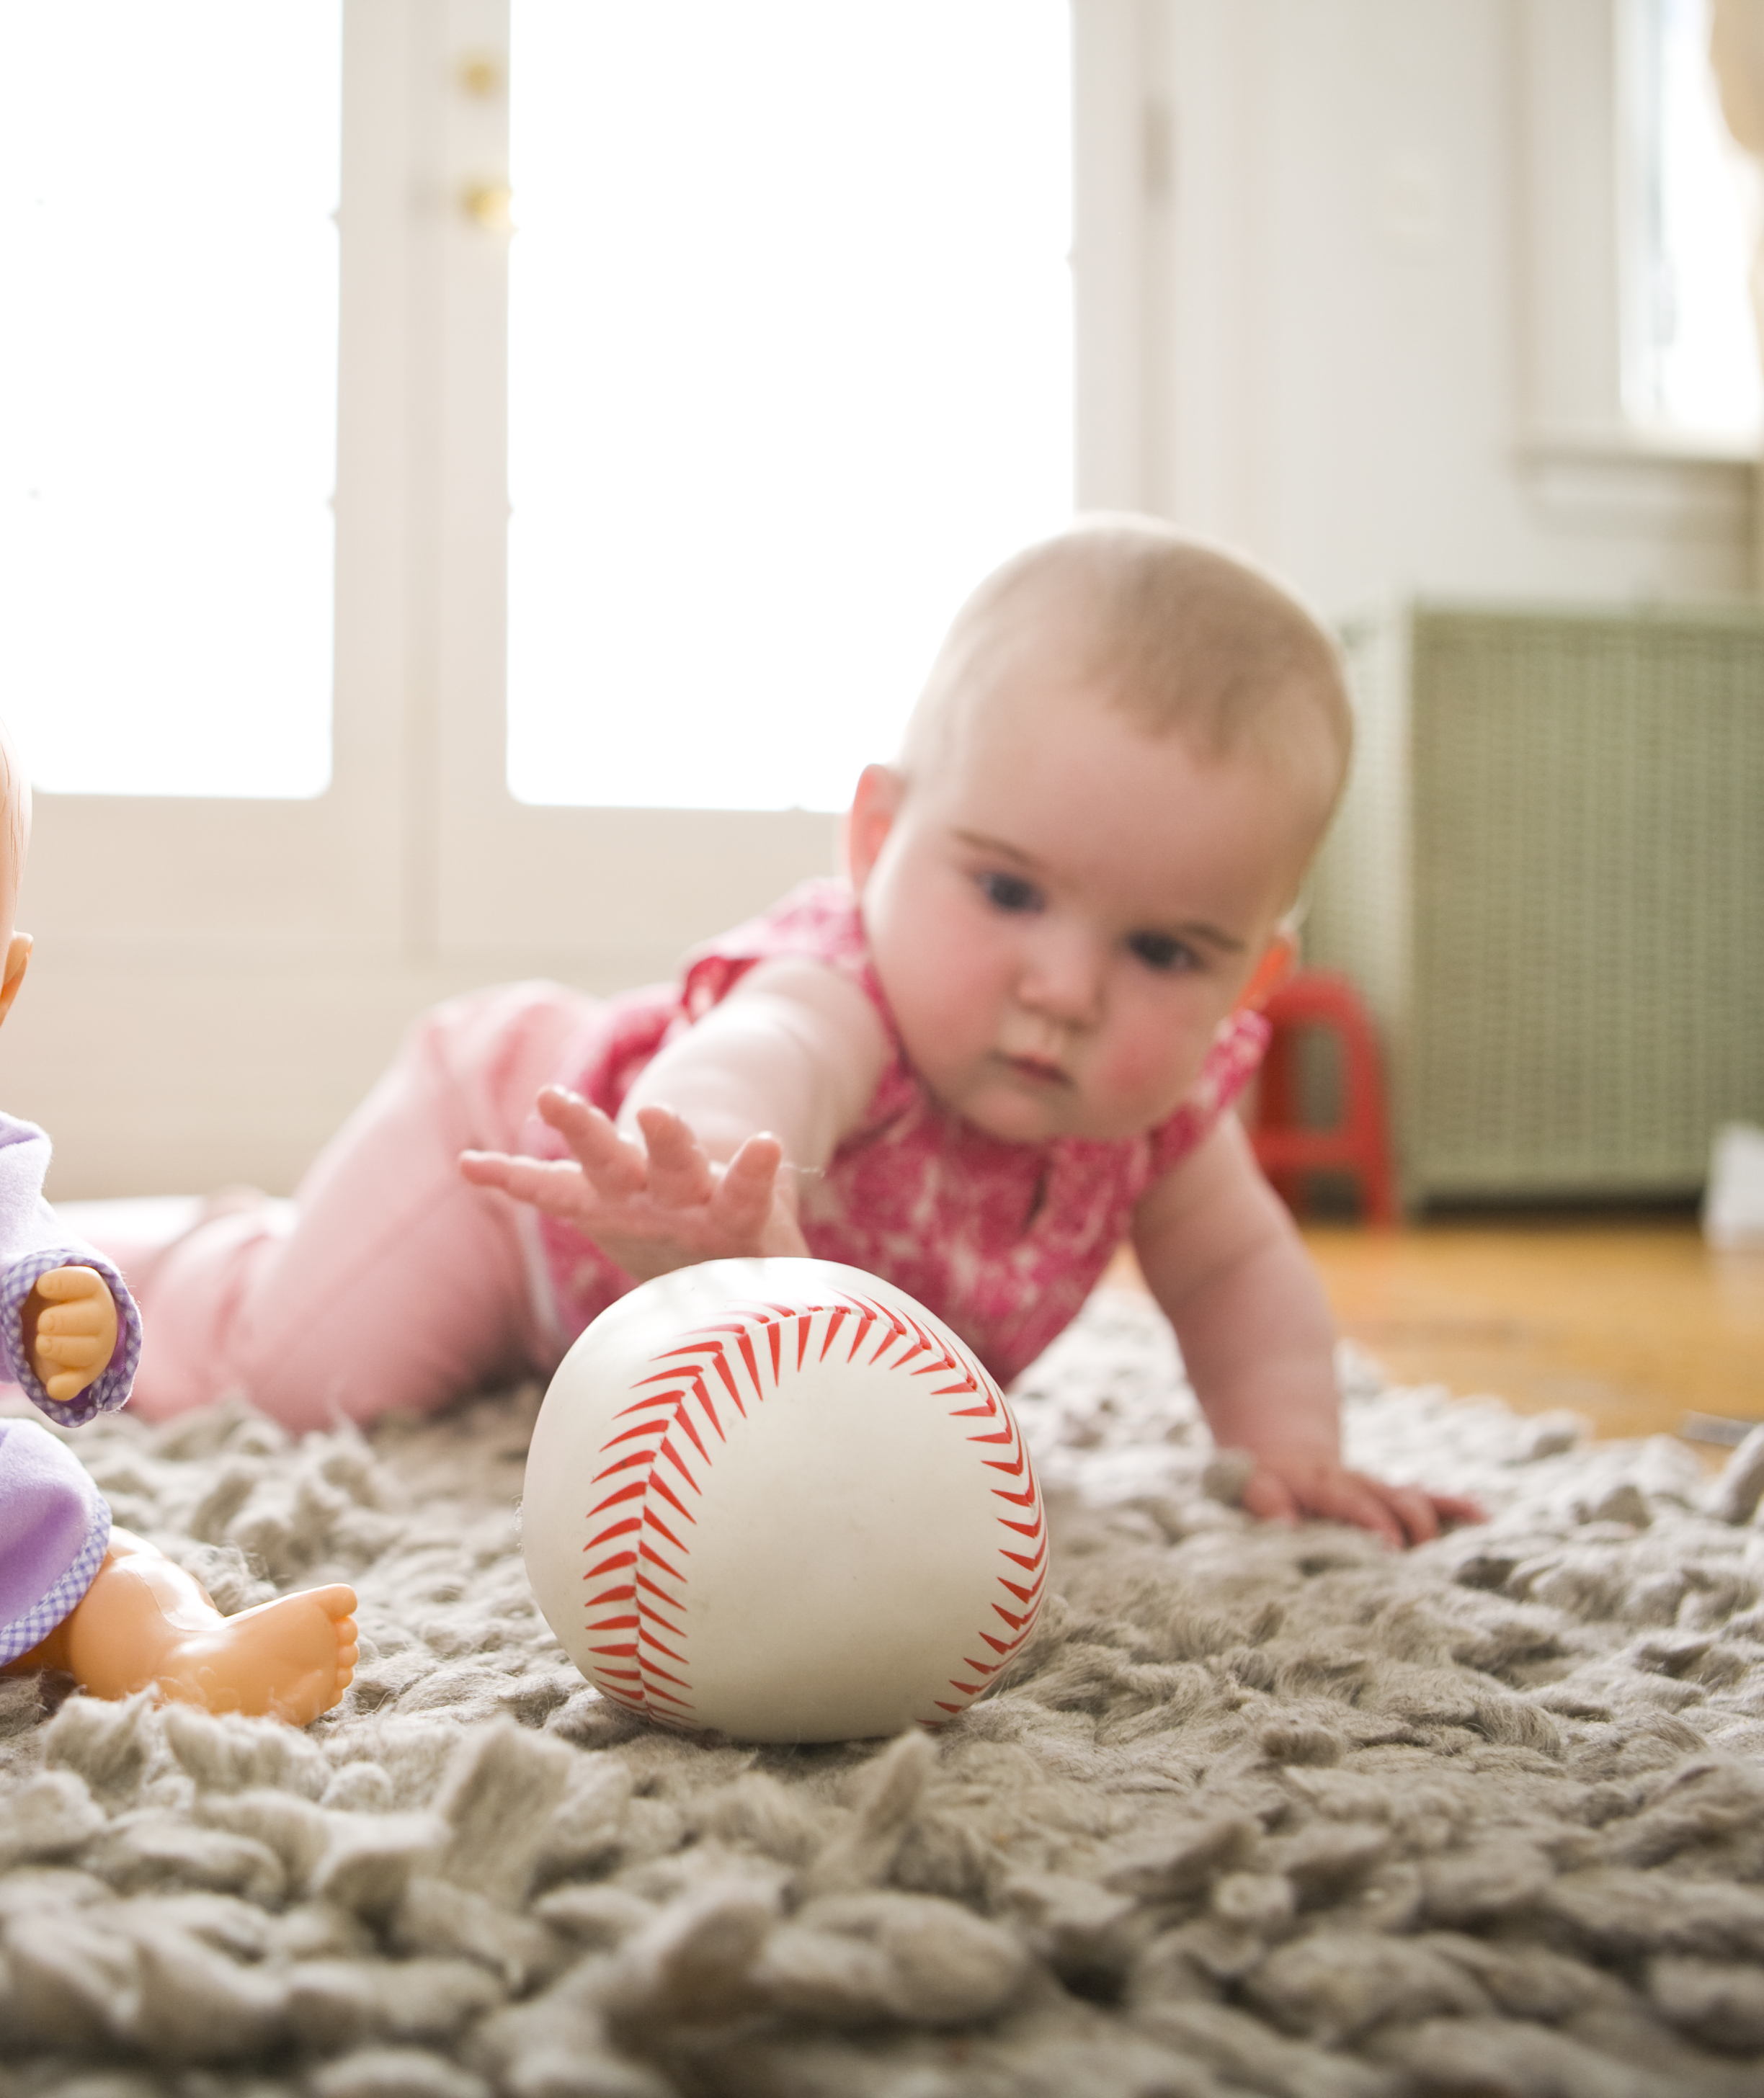 Baby Milestones: When to Worry About Late Bloomers